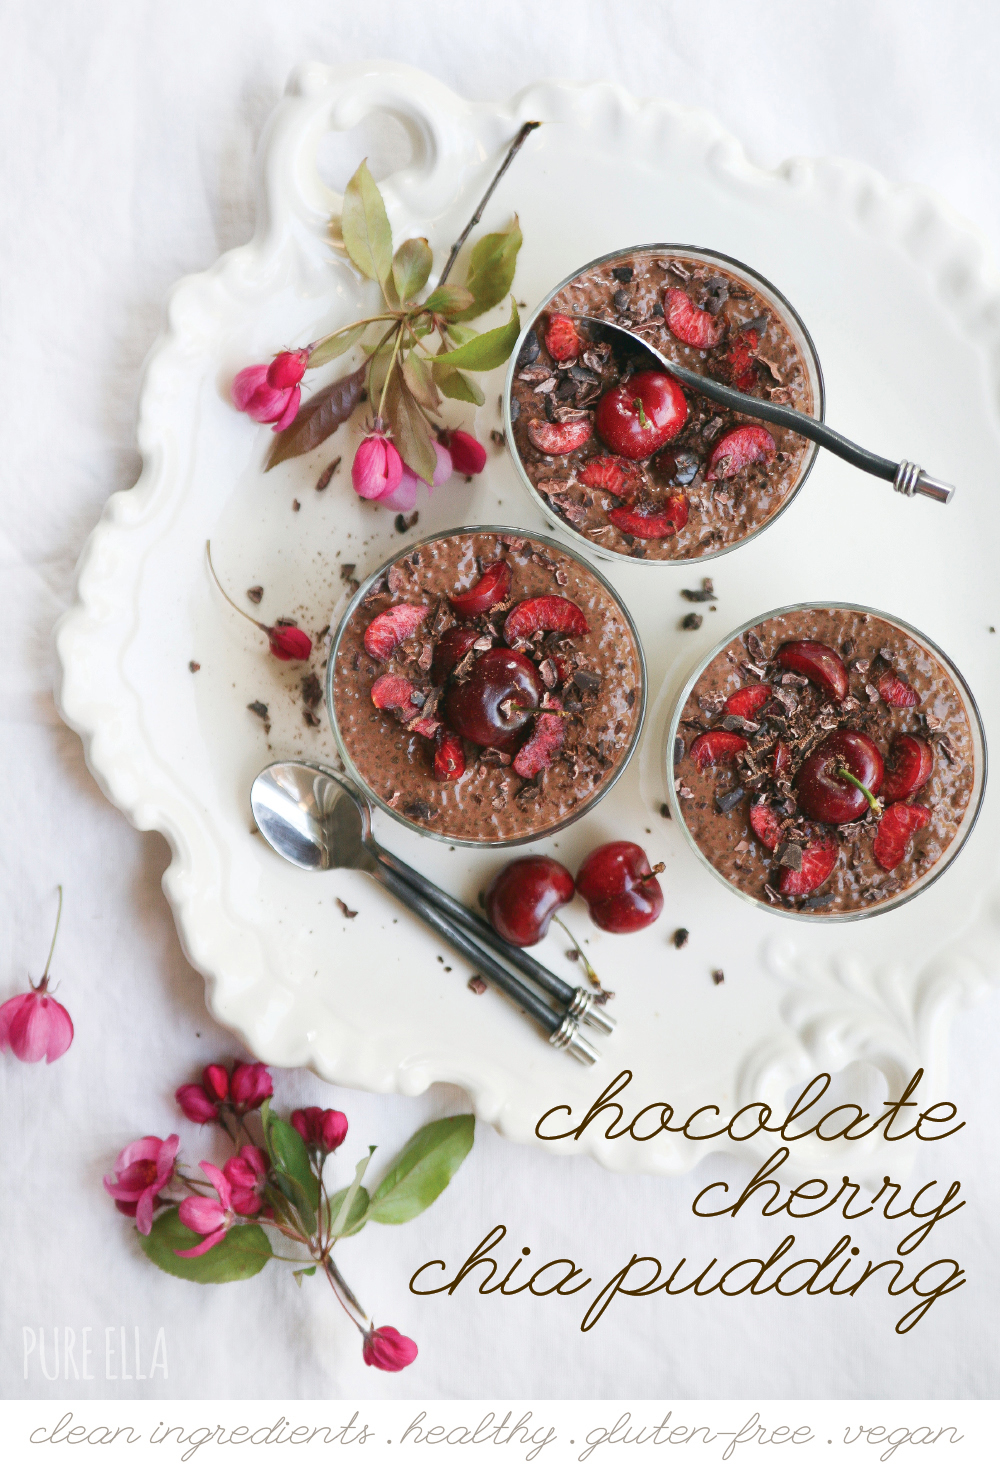 Pure ella gluten free vegan chocolate cherry chia pudding1